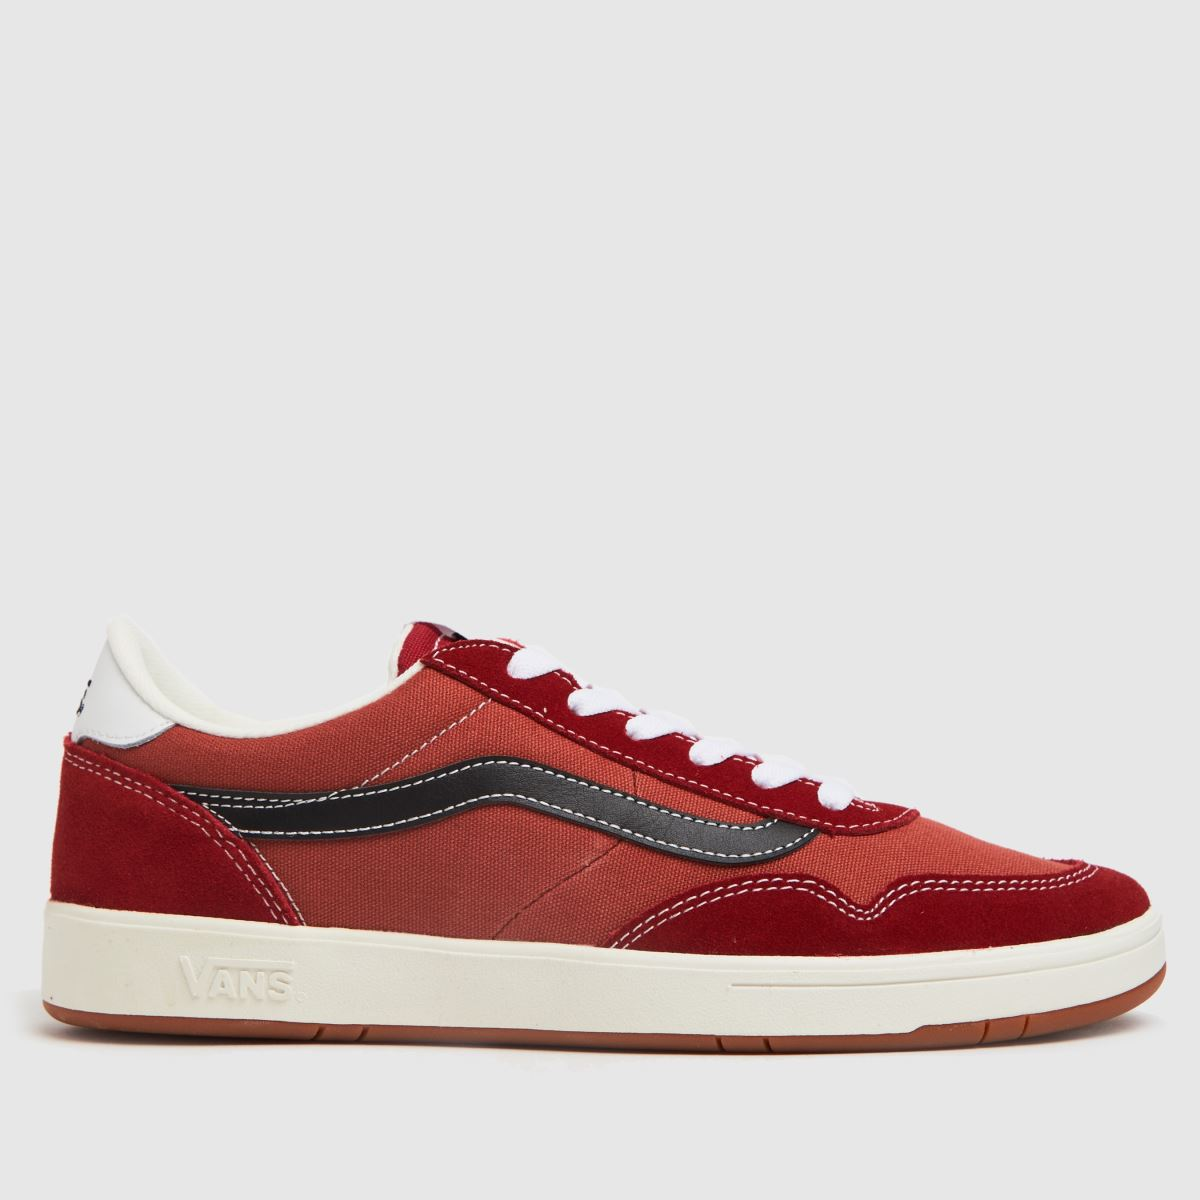 Vans Red Cruze To Cc Trainers